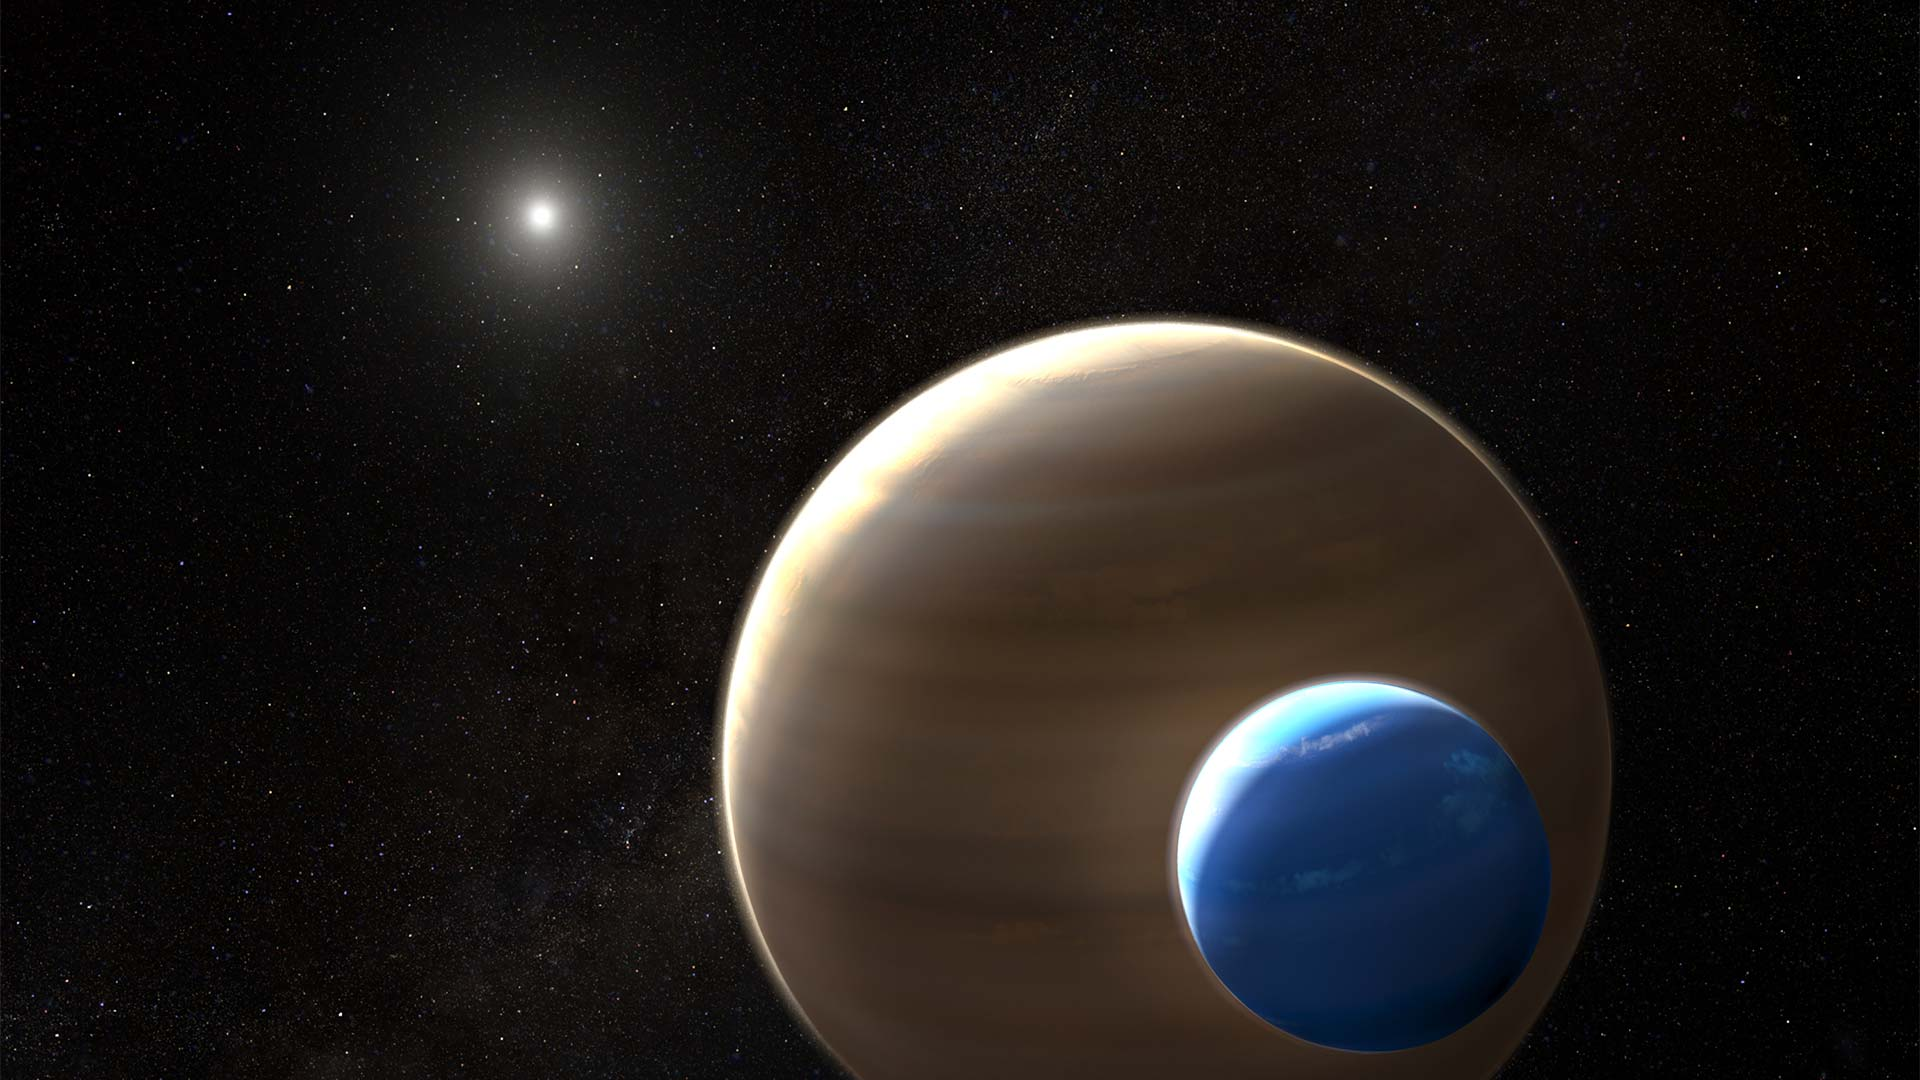 Scientists have found evidence of a possible exomoon, though they stress the need for more data and observations.